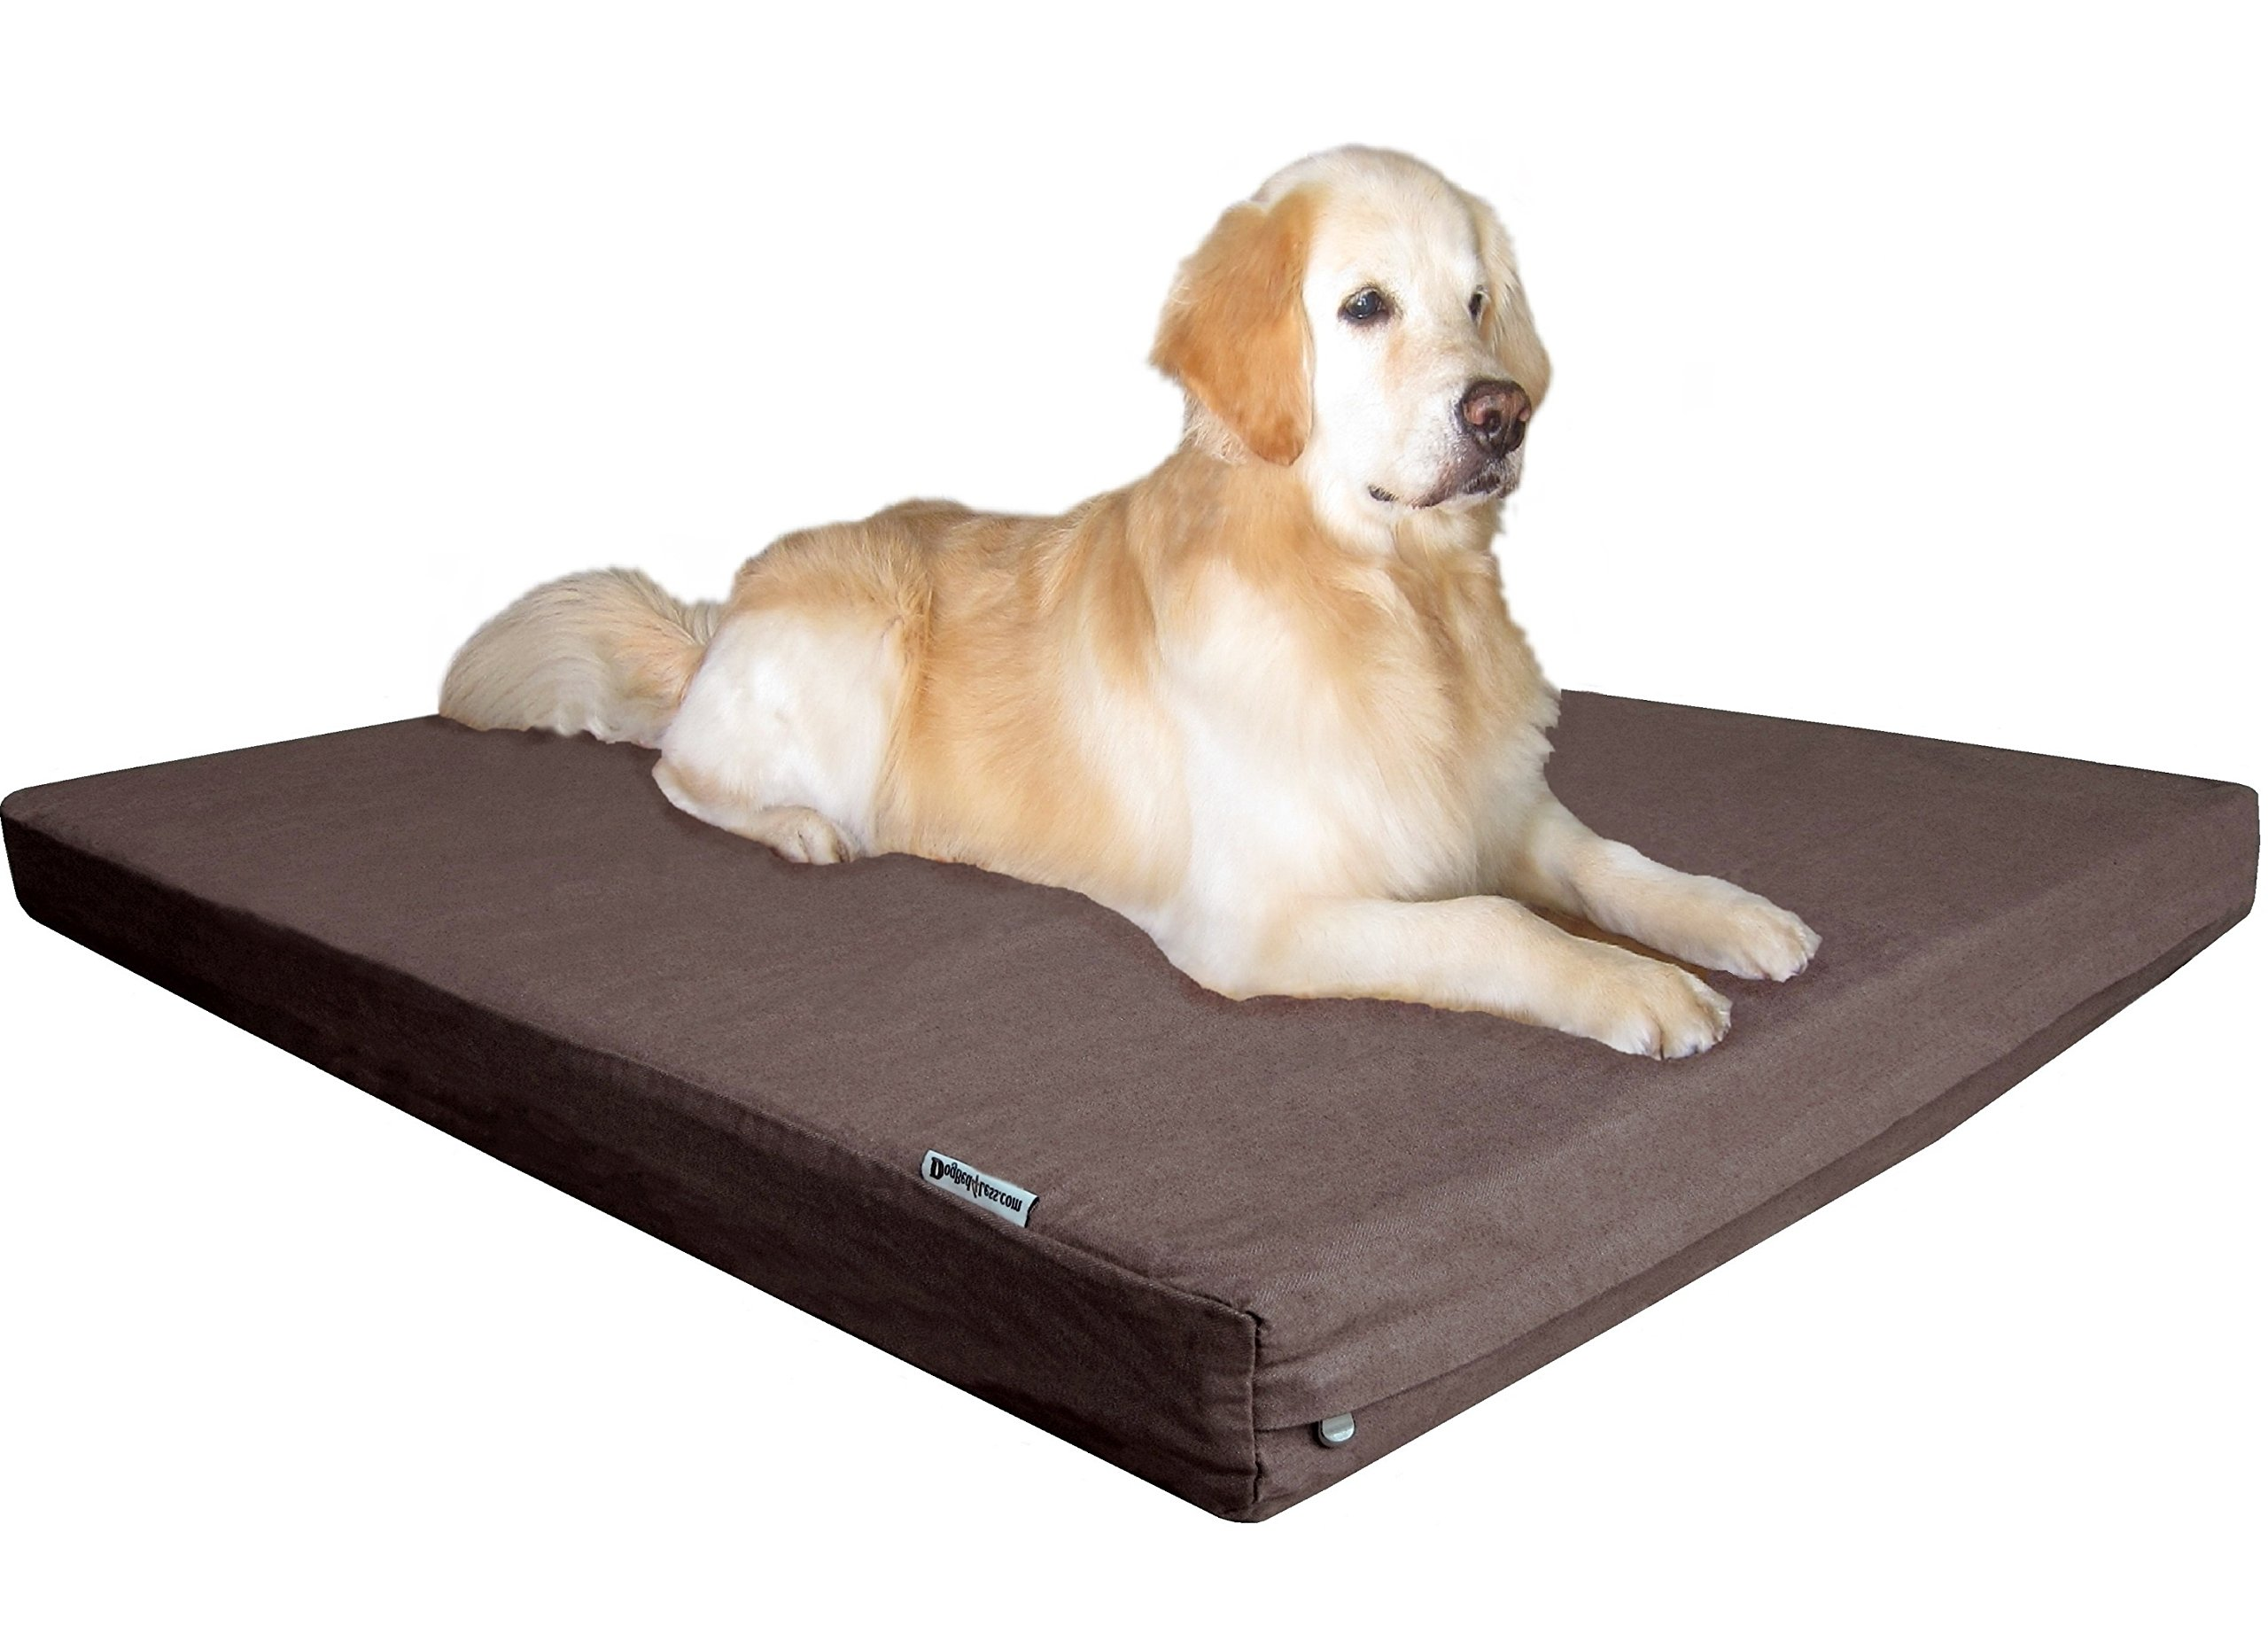 Dogbed4less XXL Large Orthopedic Gel Memory Foam Dog Bed with Durable Denim Cover, Waterproof Liner and Extra Pet Bed Case, 55X37X4 Inch